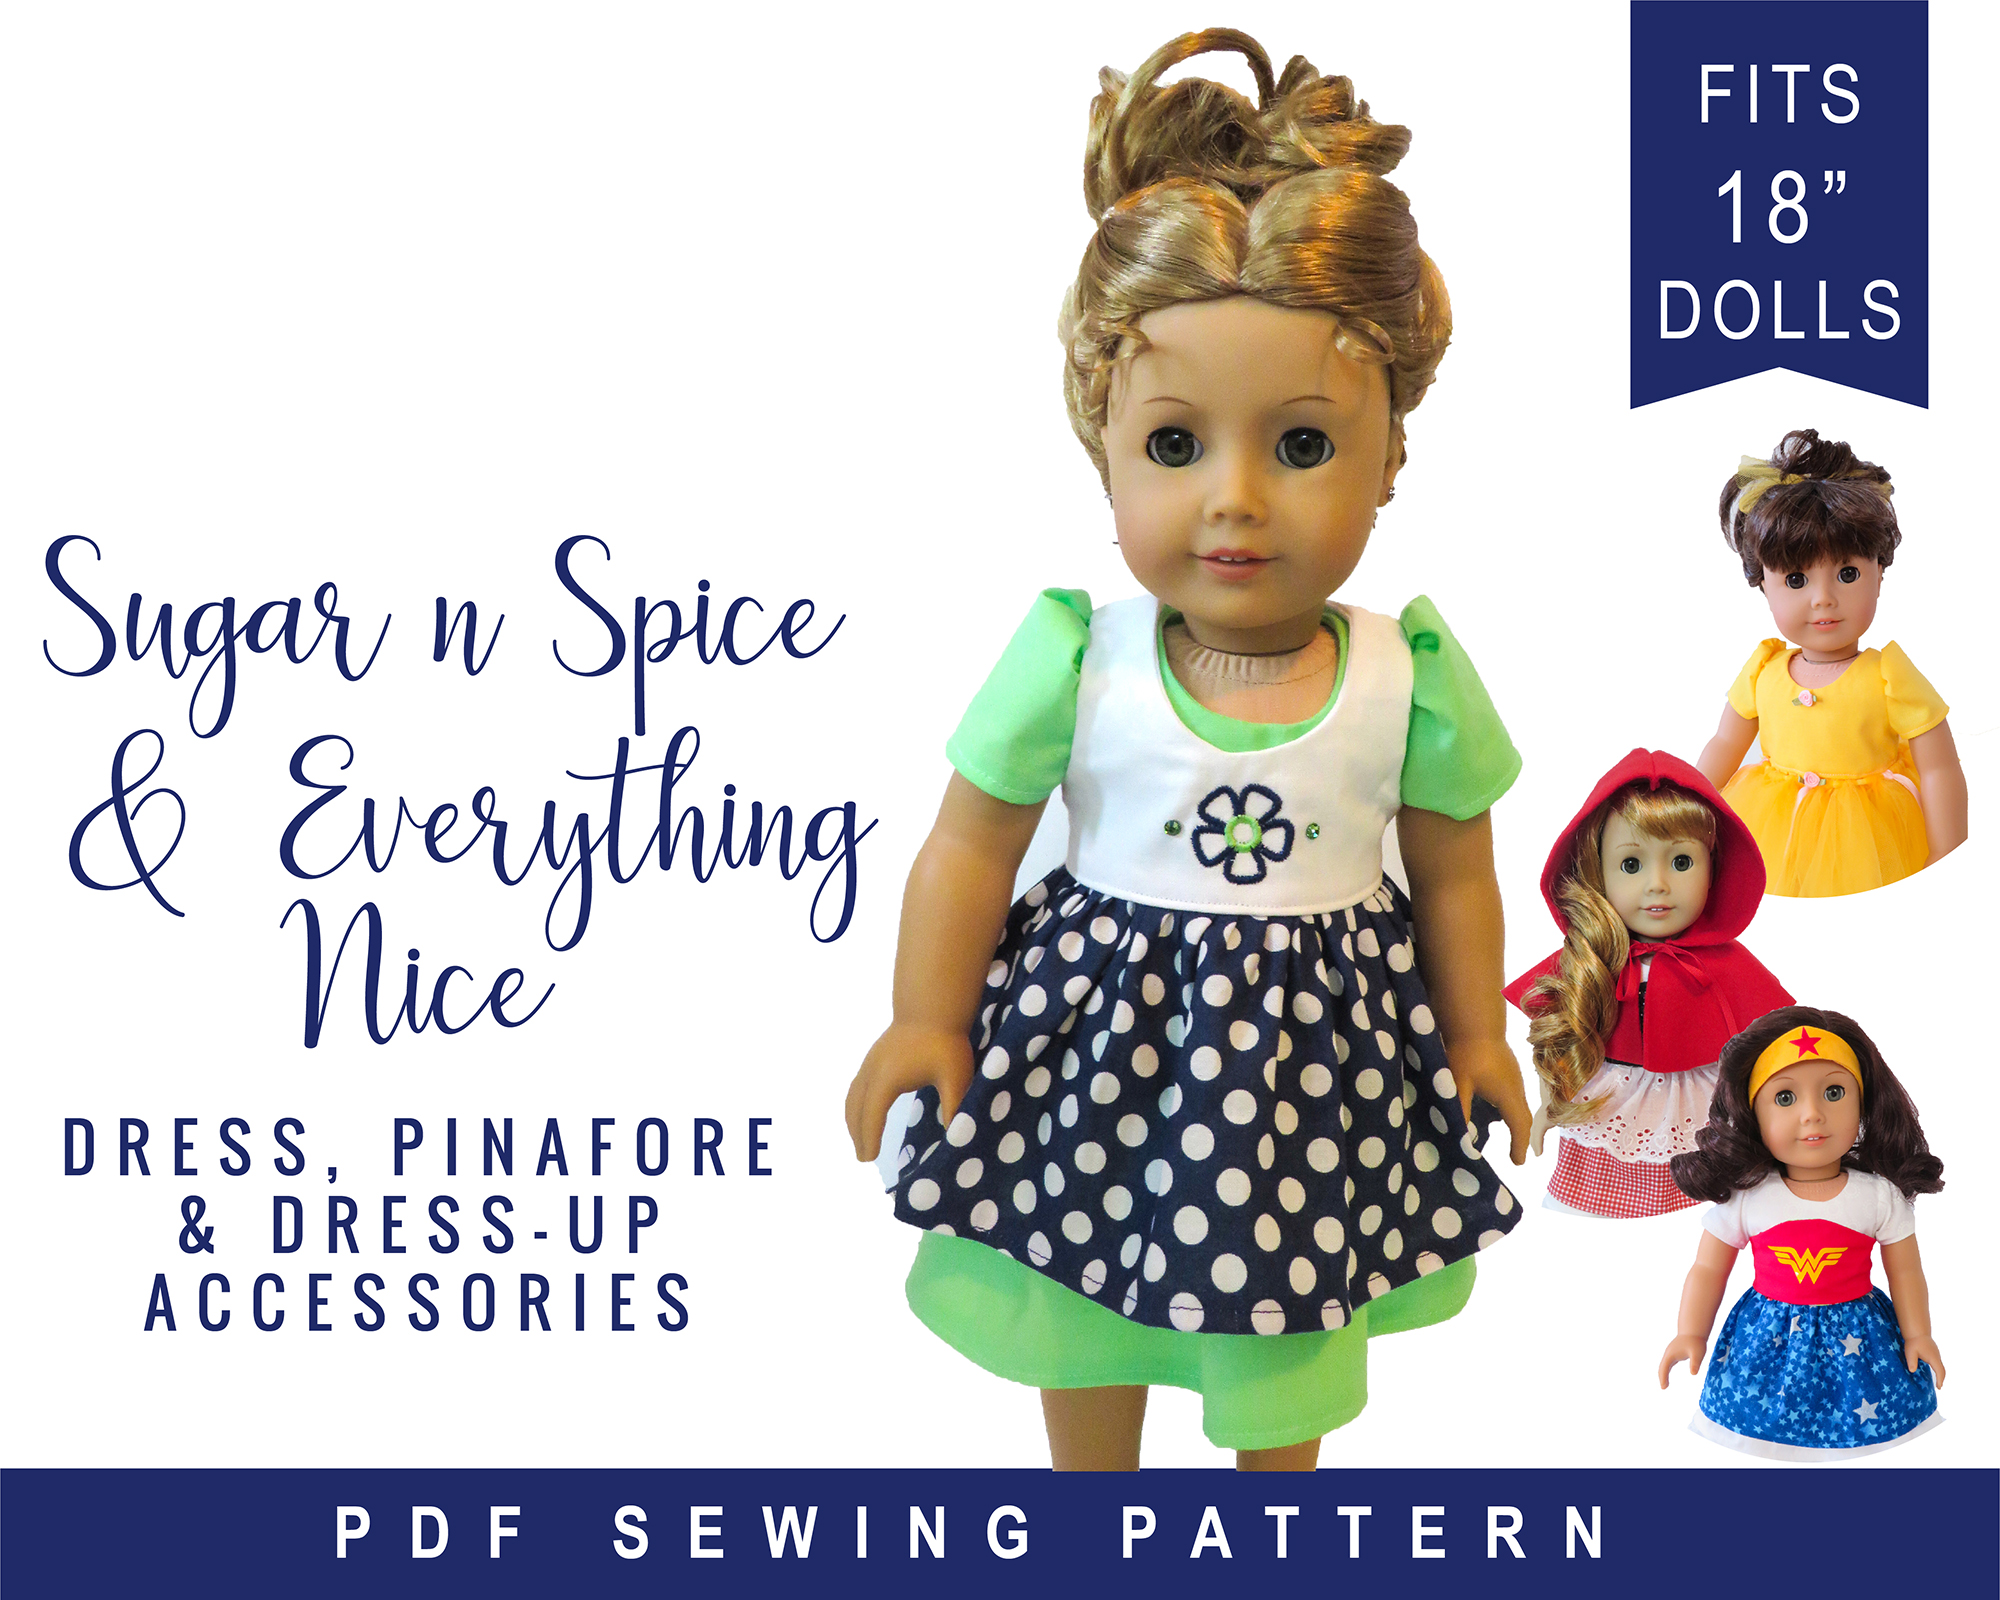 Easy sewing pattern for 18 inch dolls- dress, pinafore, cape, corset, tutu, apron, and overskirt. Mix and match to make Halloween costumes and 18 inch doll dresses.